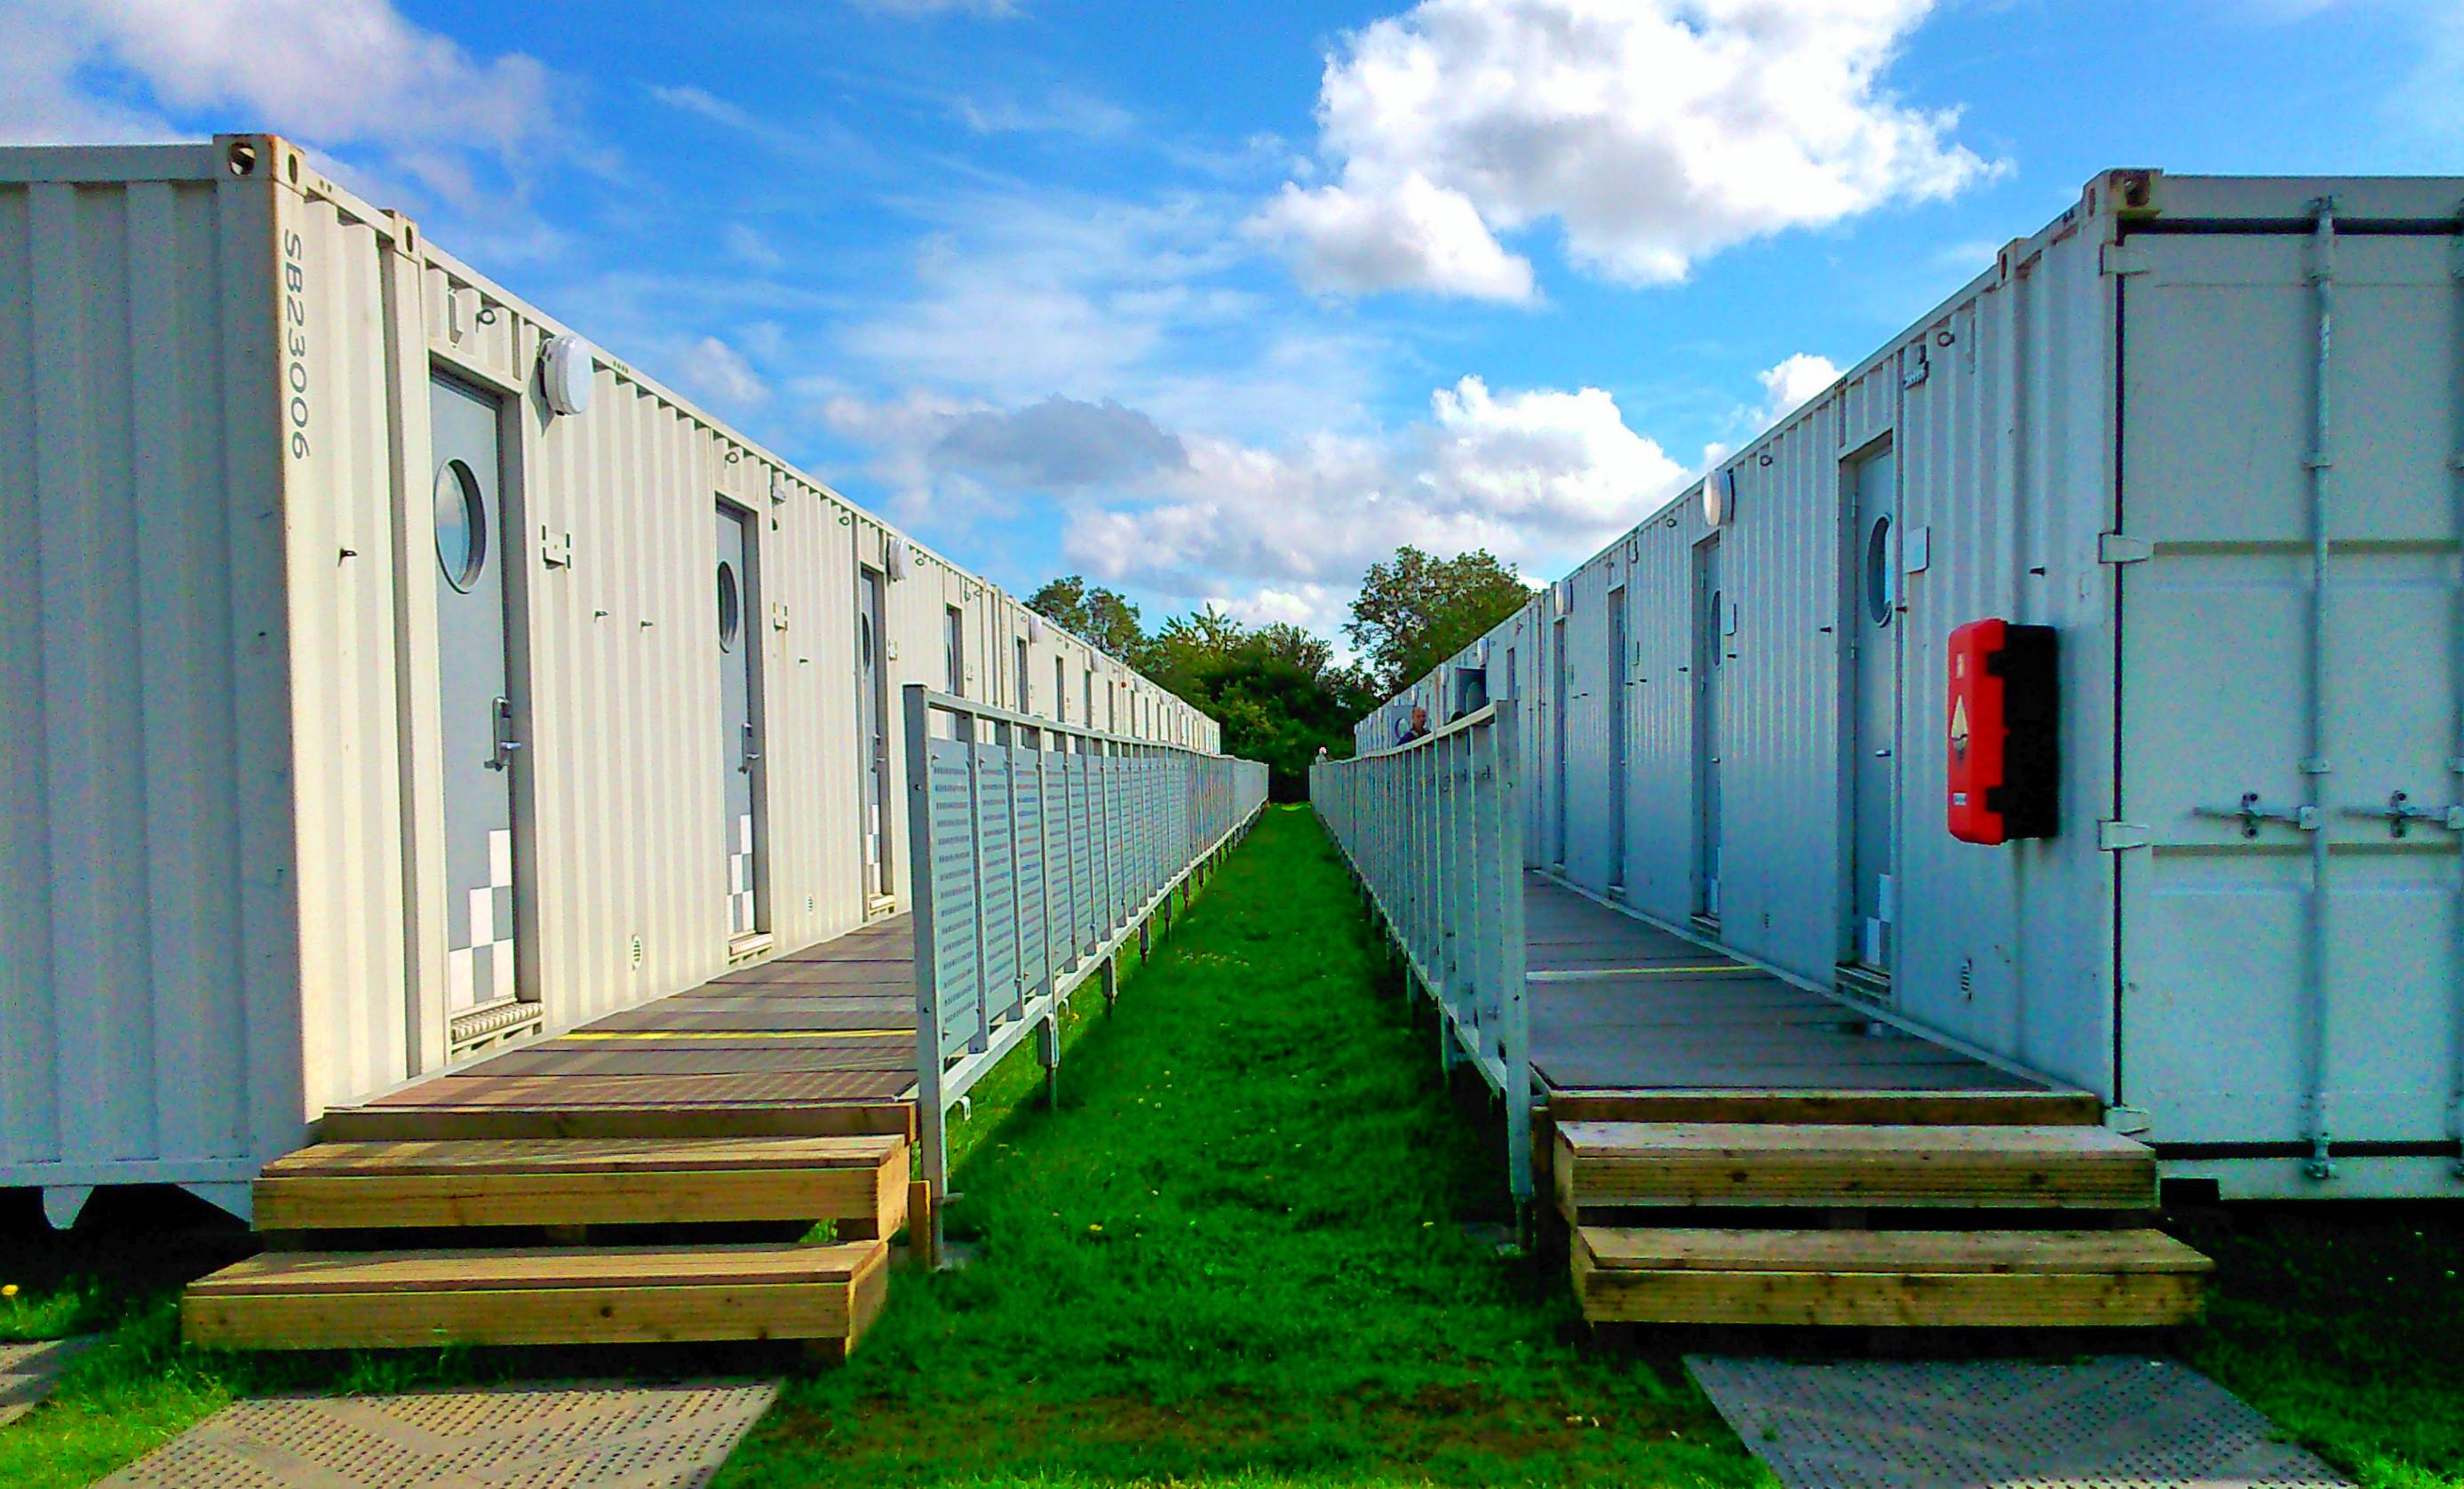 One Night Shipping Container Travel Sleep Repeat